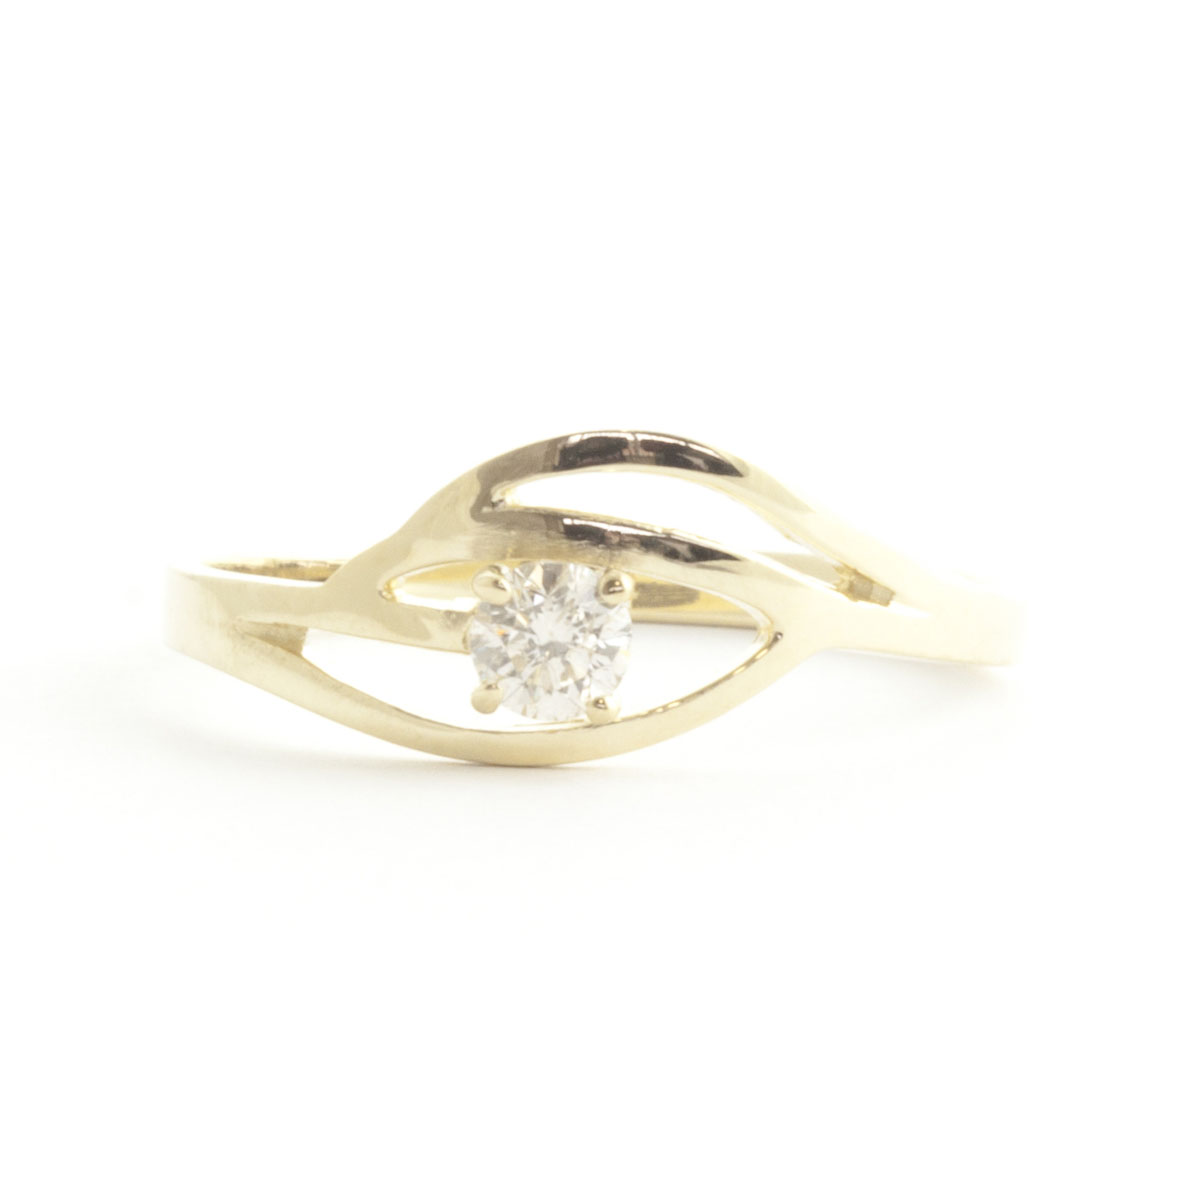 Round Cut Diamond Ring 0.15 ct in 18ct Gold